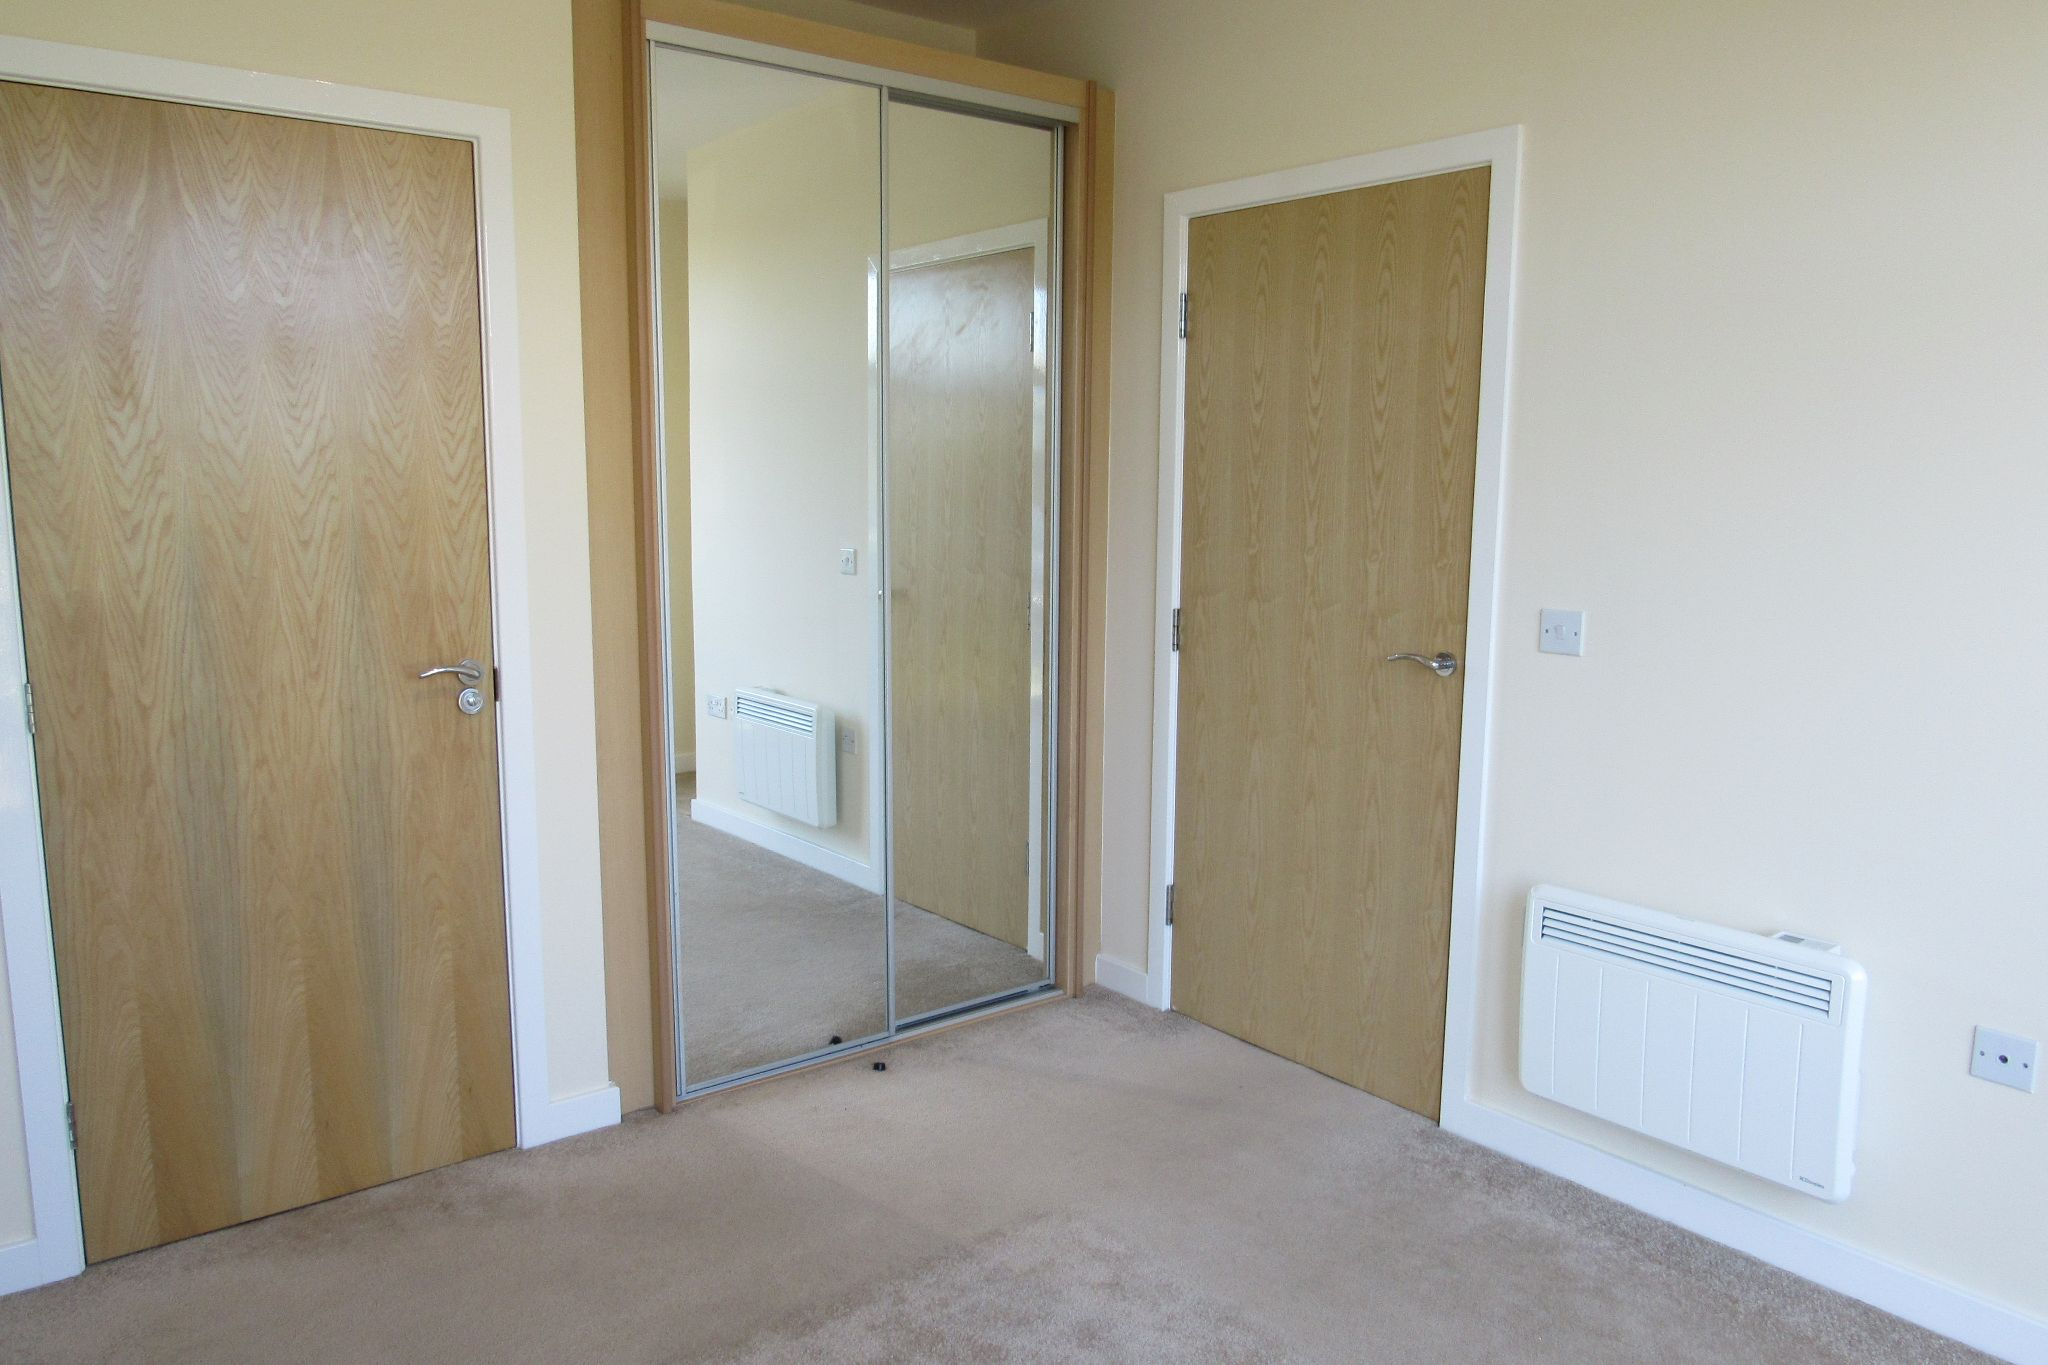 2 bedroom apartment flat/apartment For Sale in Manchester - Photograph 7.